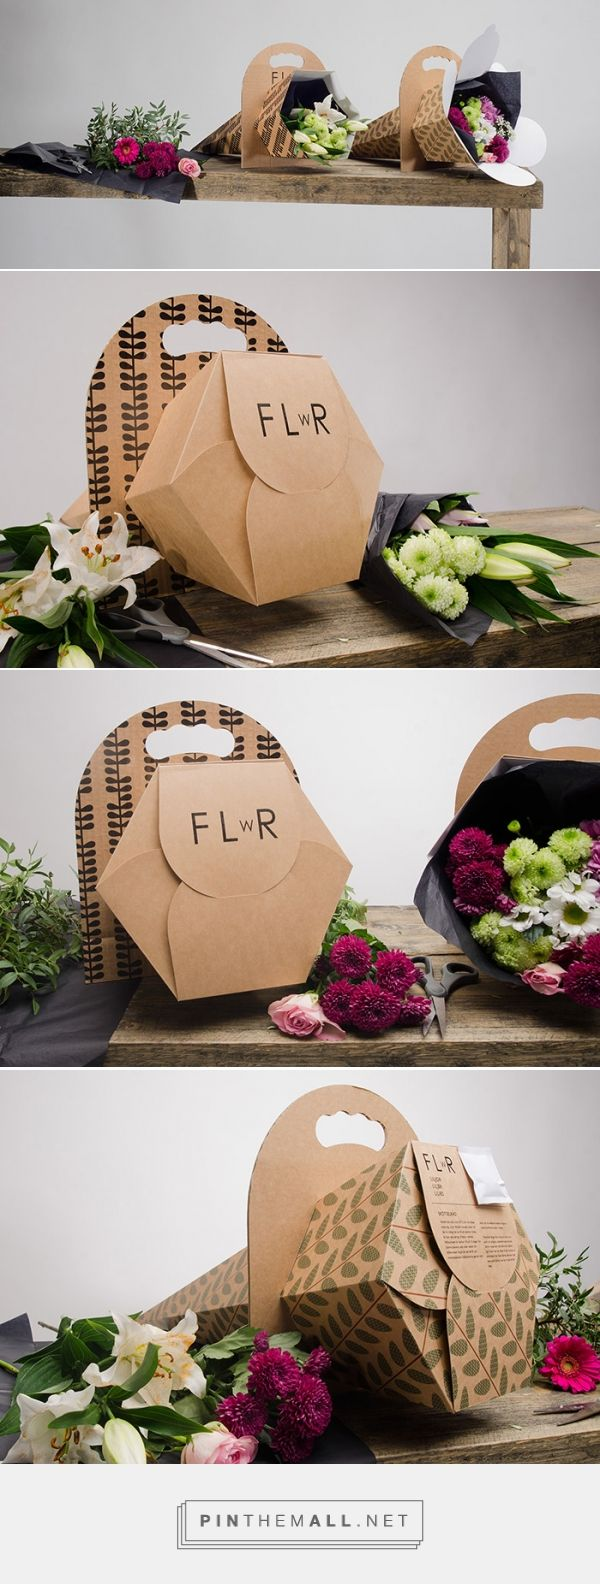 The future of flower packaging by Linn Karlsson. Source: Daily Package Design Inspiration. #SFields #packaging #design#structural